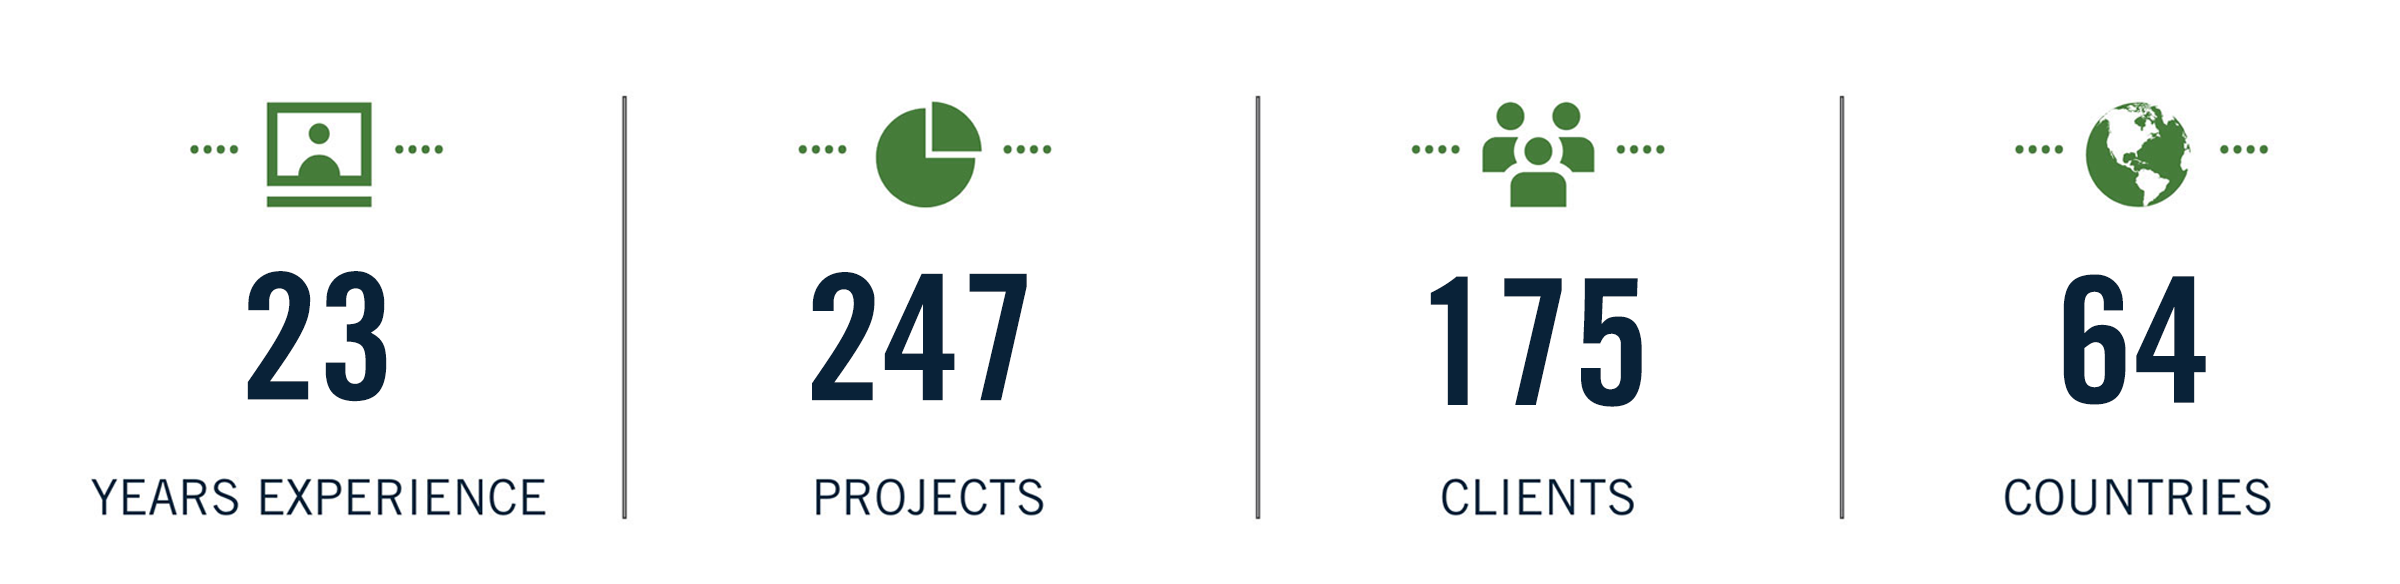 OnSite stats image